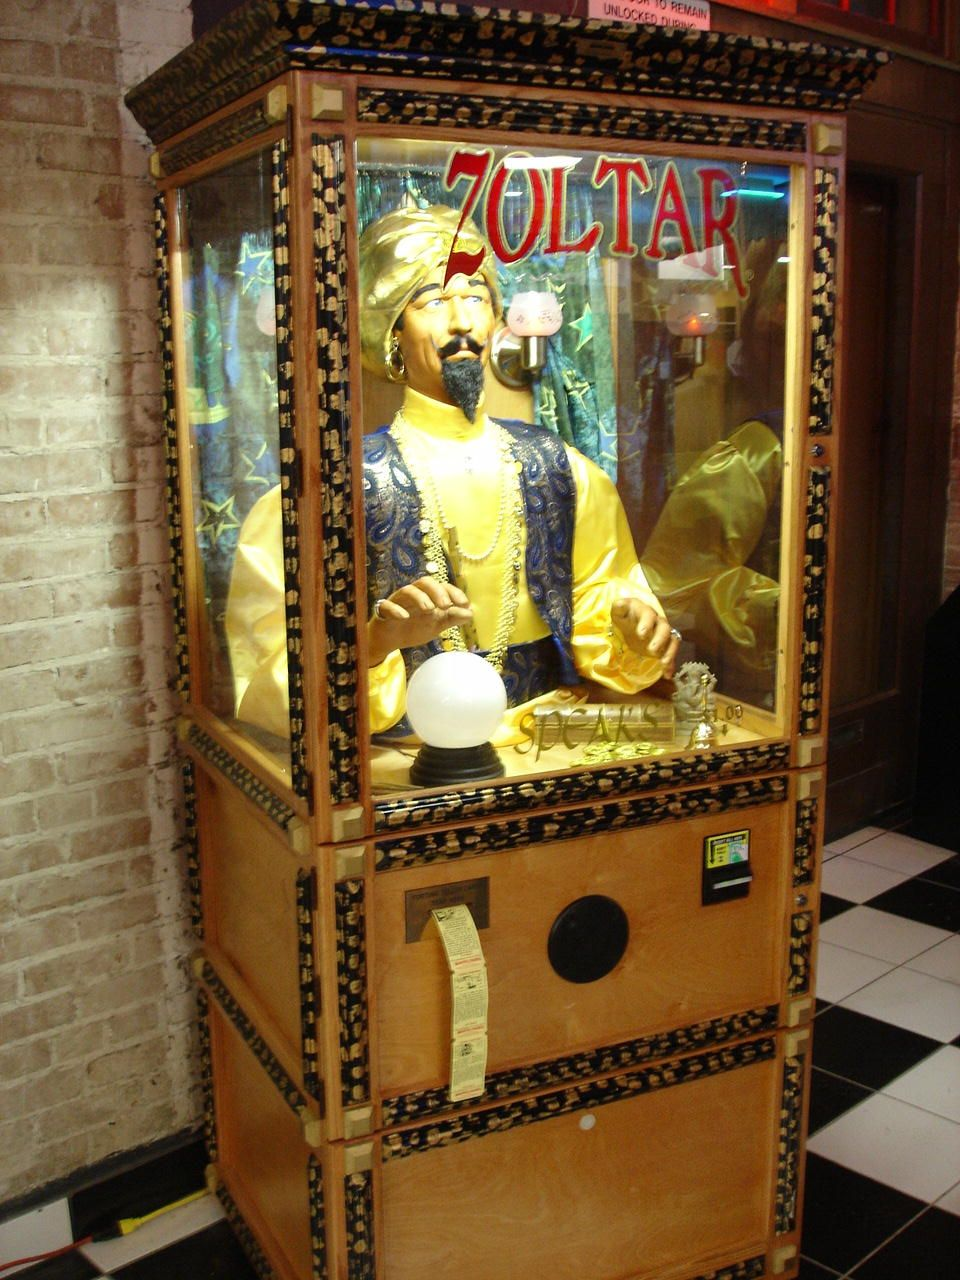 Rent this from Joystix Games for a big birthday party - Zoltar was ...